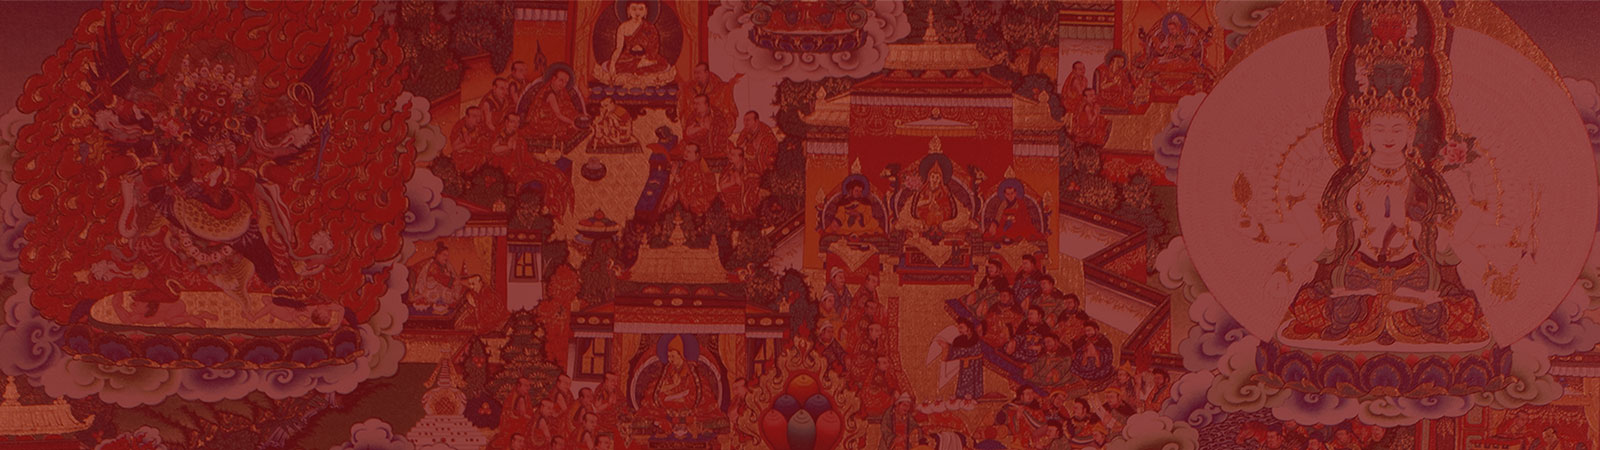 The Fifth Dalai Lama